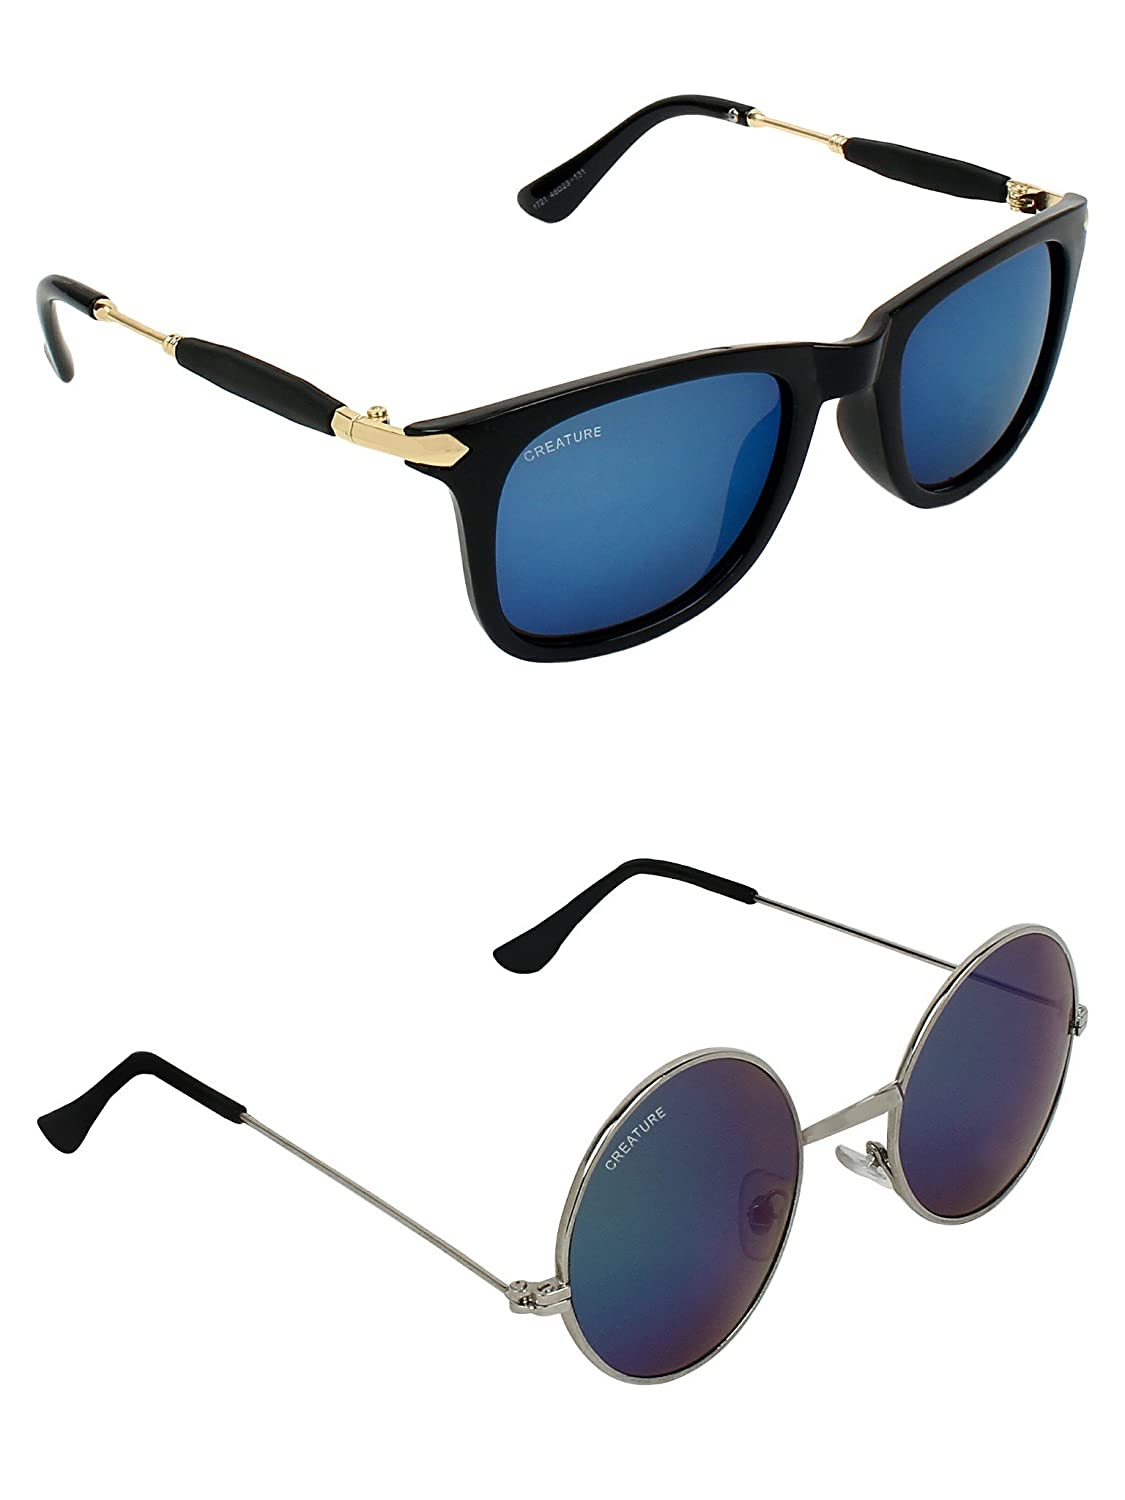 CREATURE | CREATURE Blue Round Sunglasses Combo with UV Protection (Lens-Blue|Frame-Black & Silver)